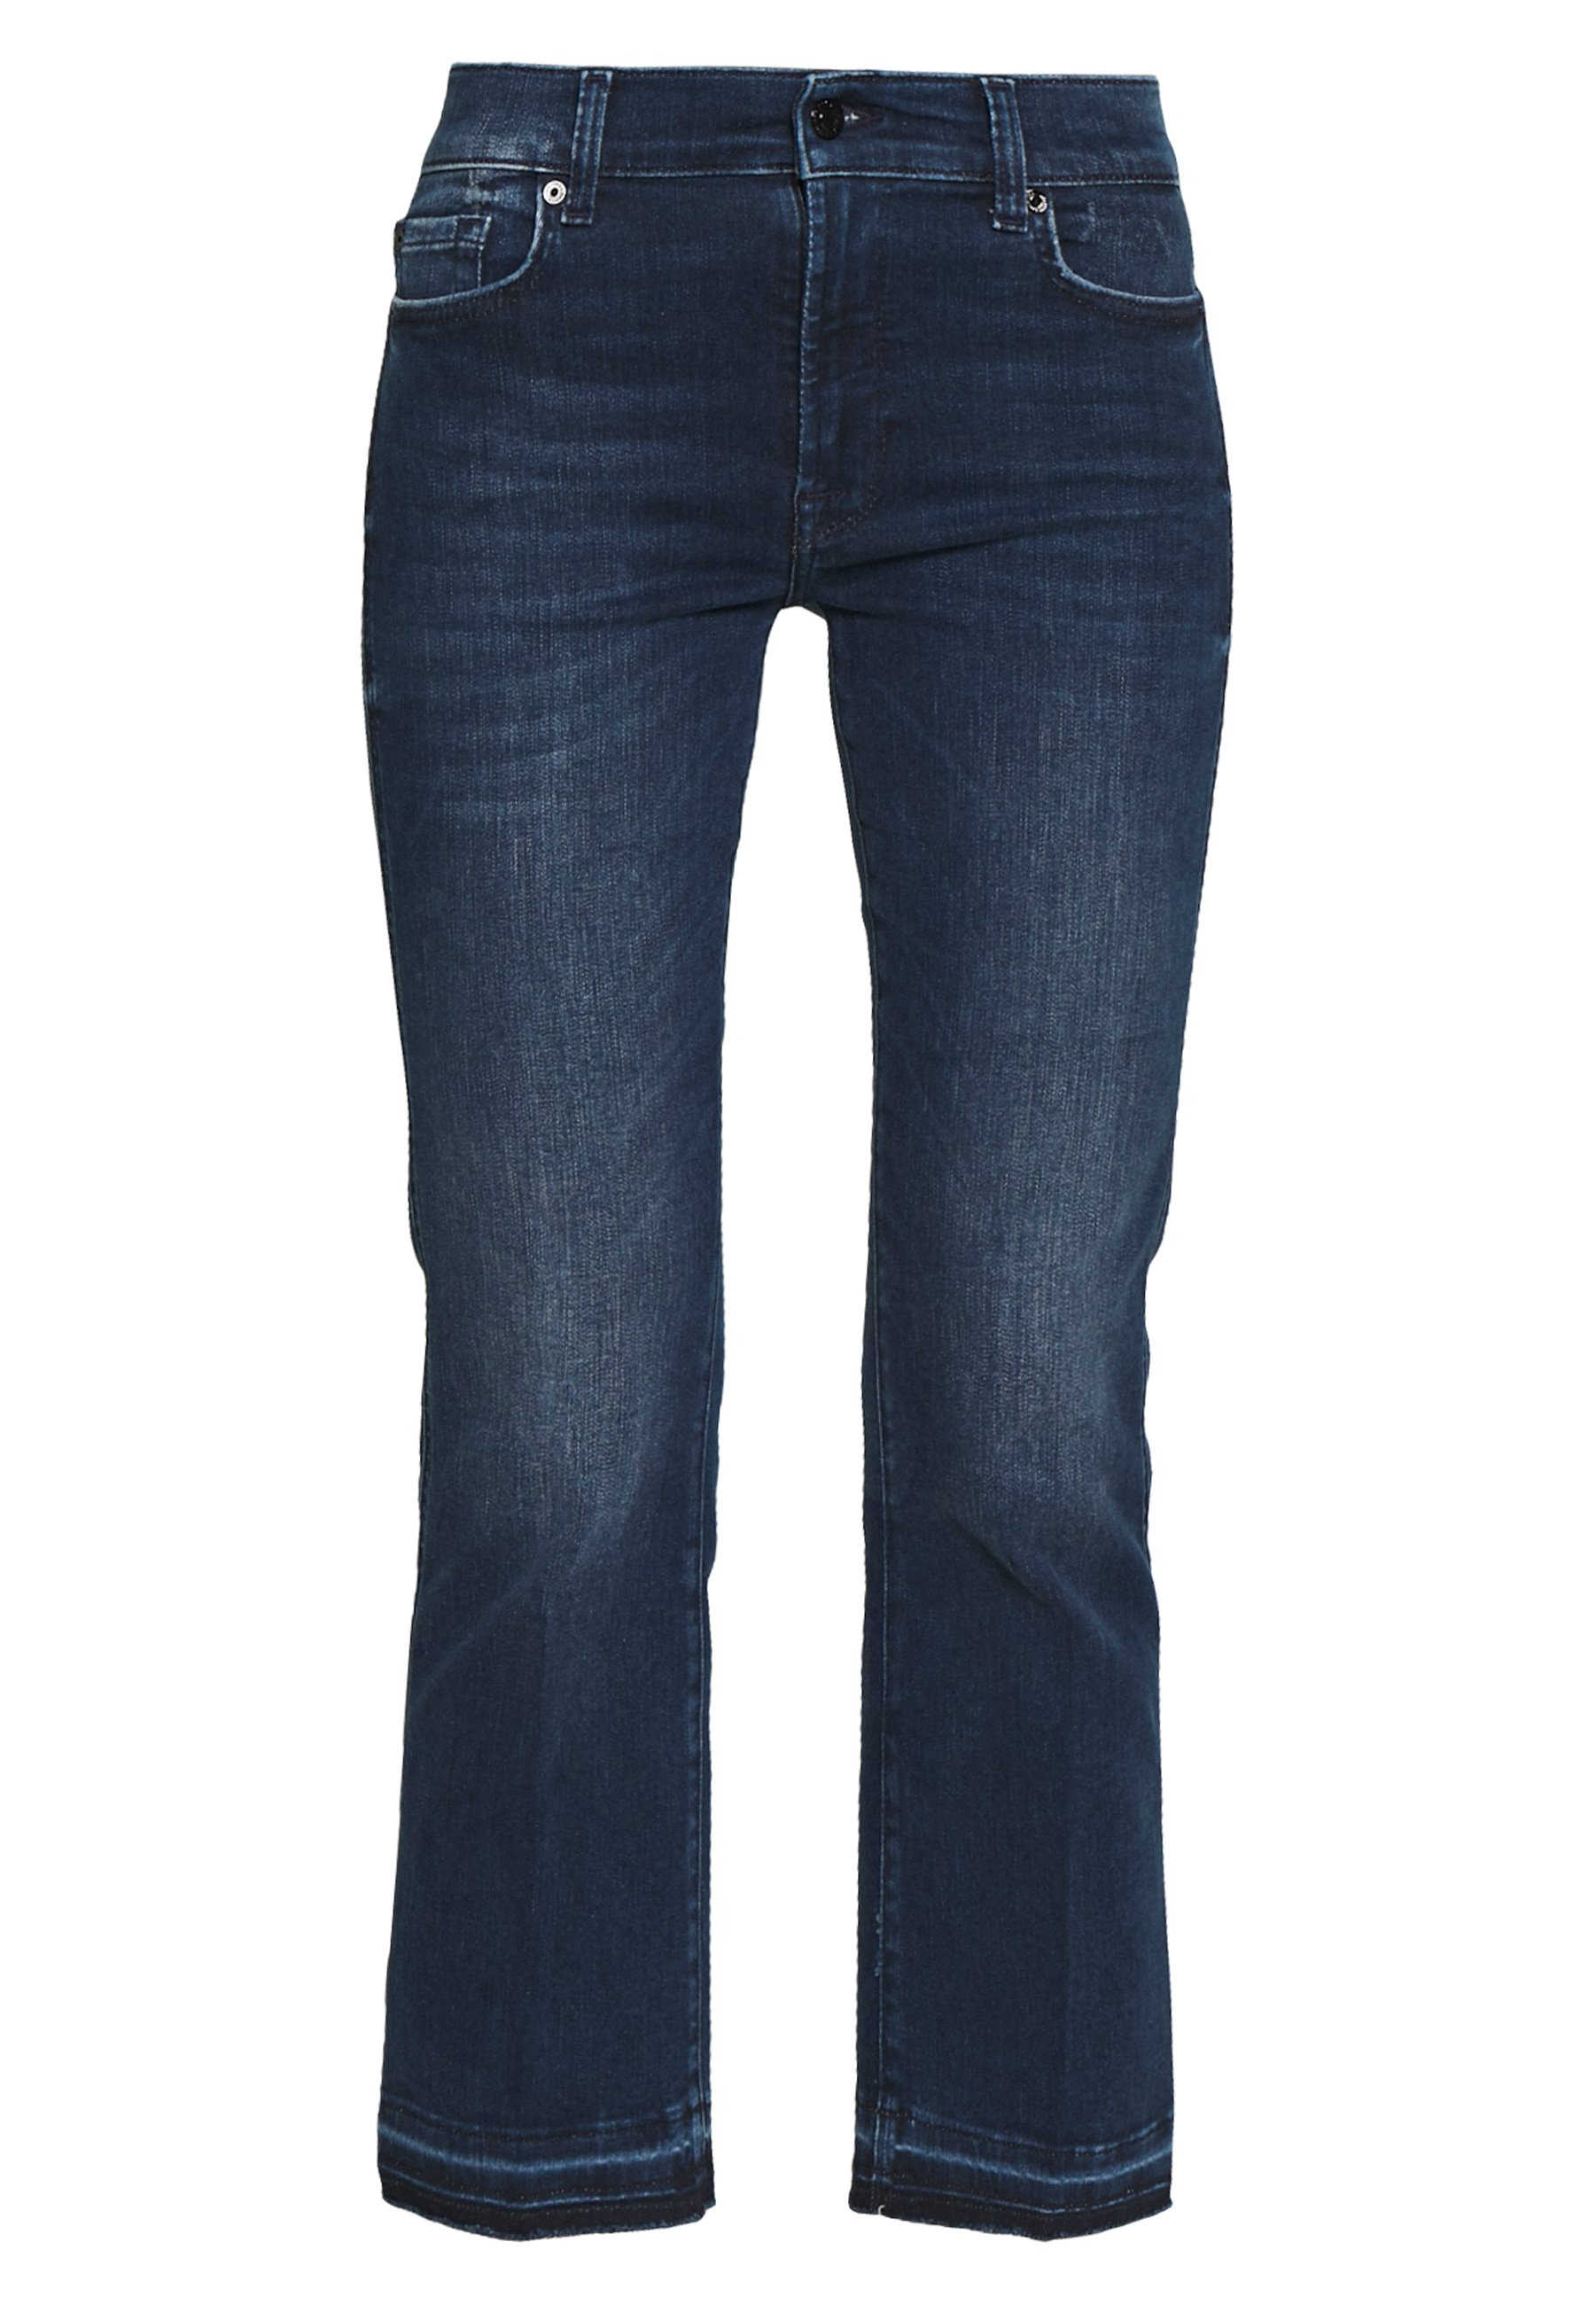 7 For All Mankind Cropped Unrolled - Jeans Bootcut Dark Blue PlHZ9L2